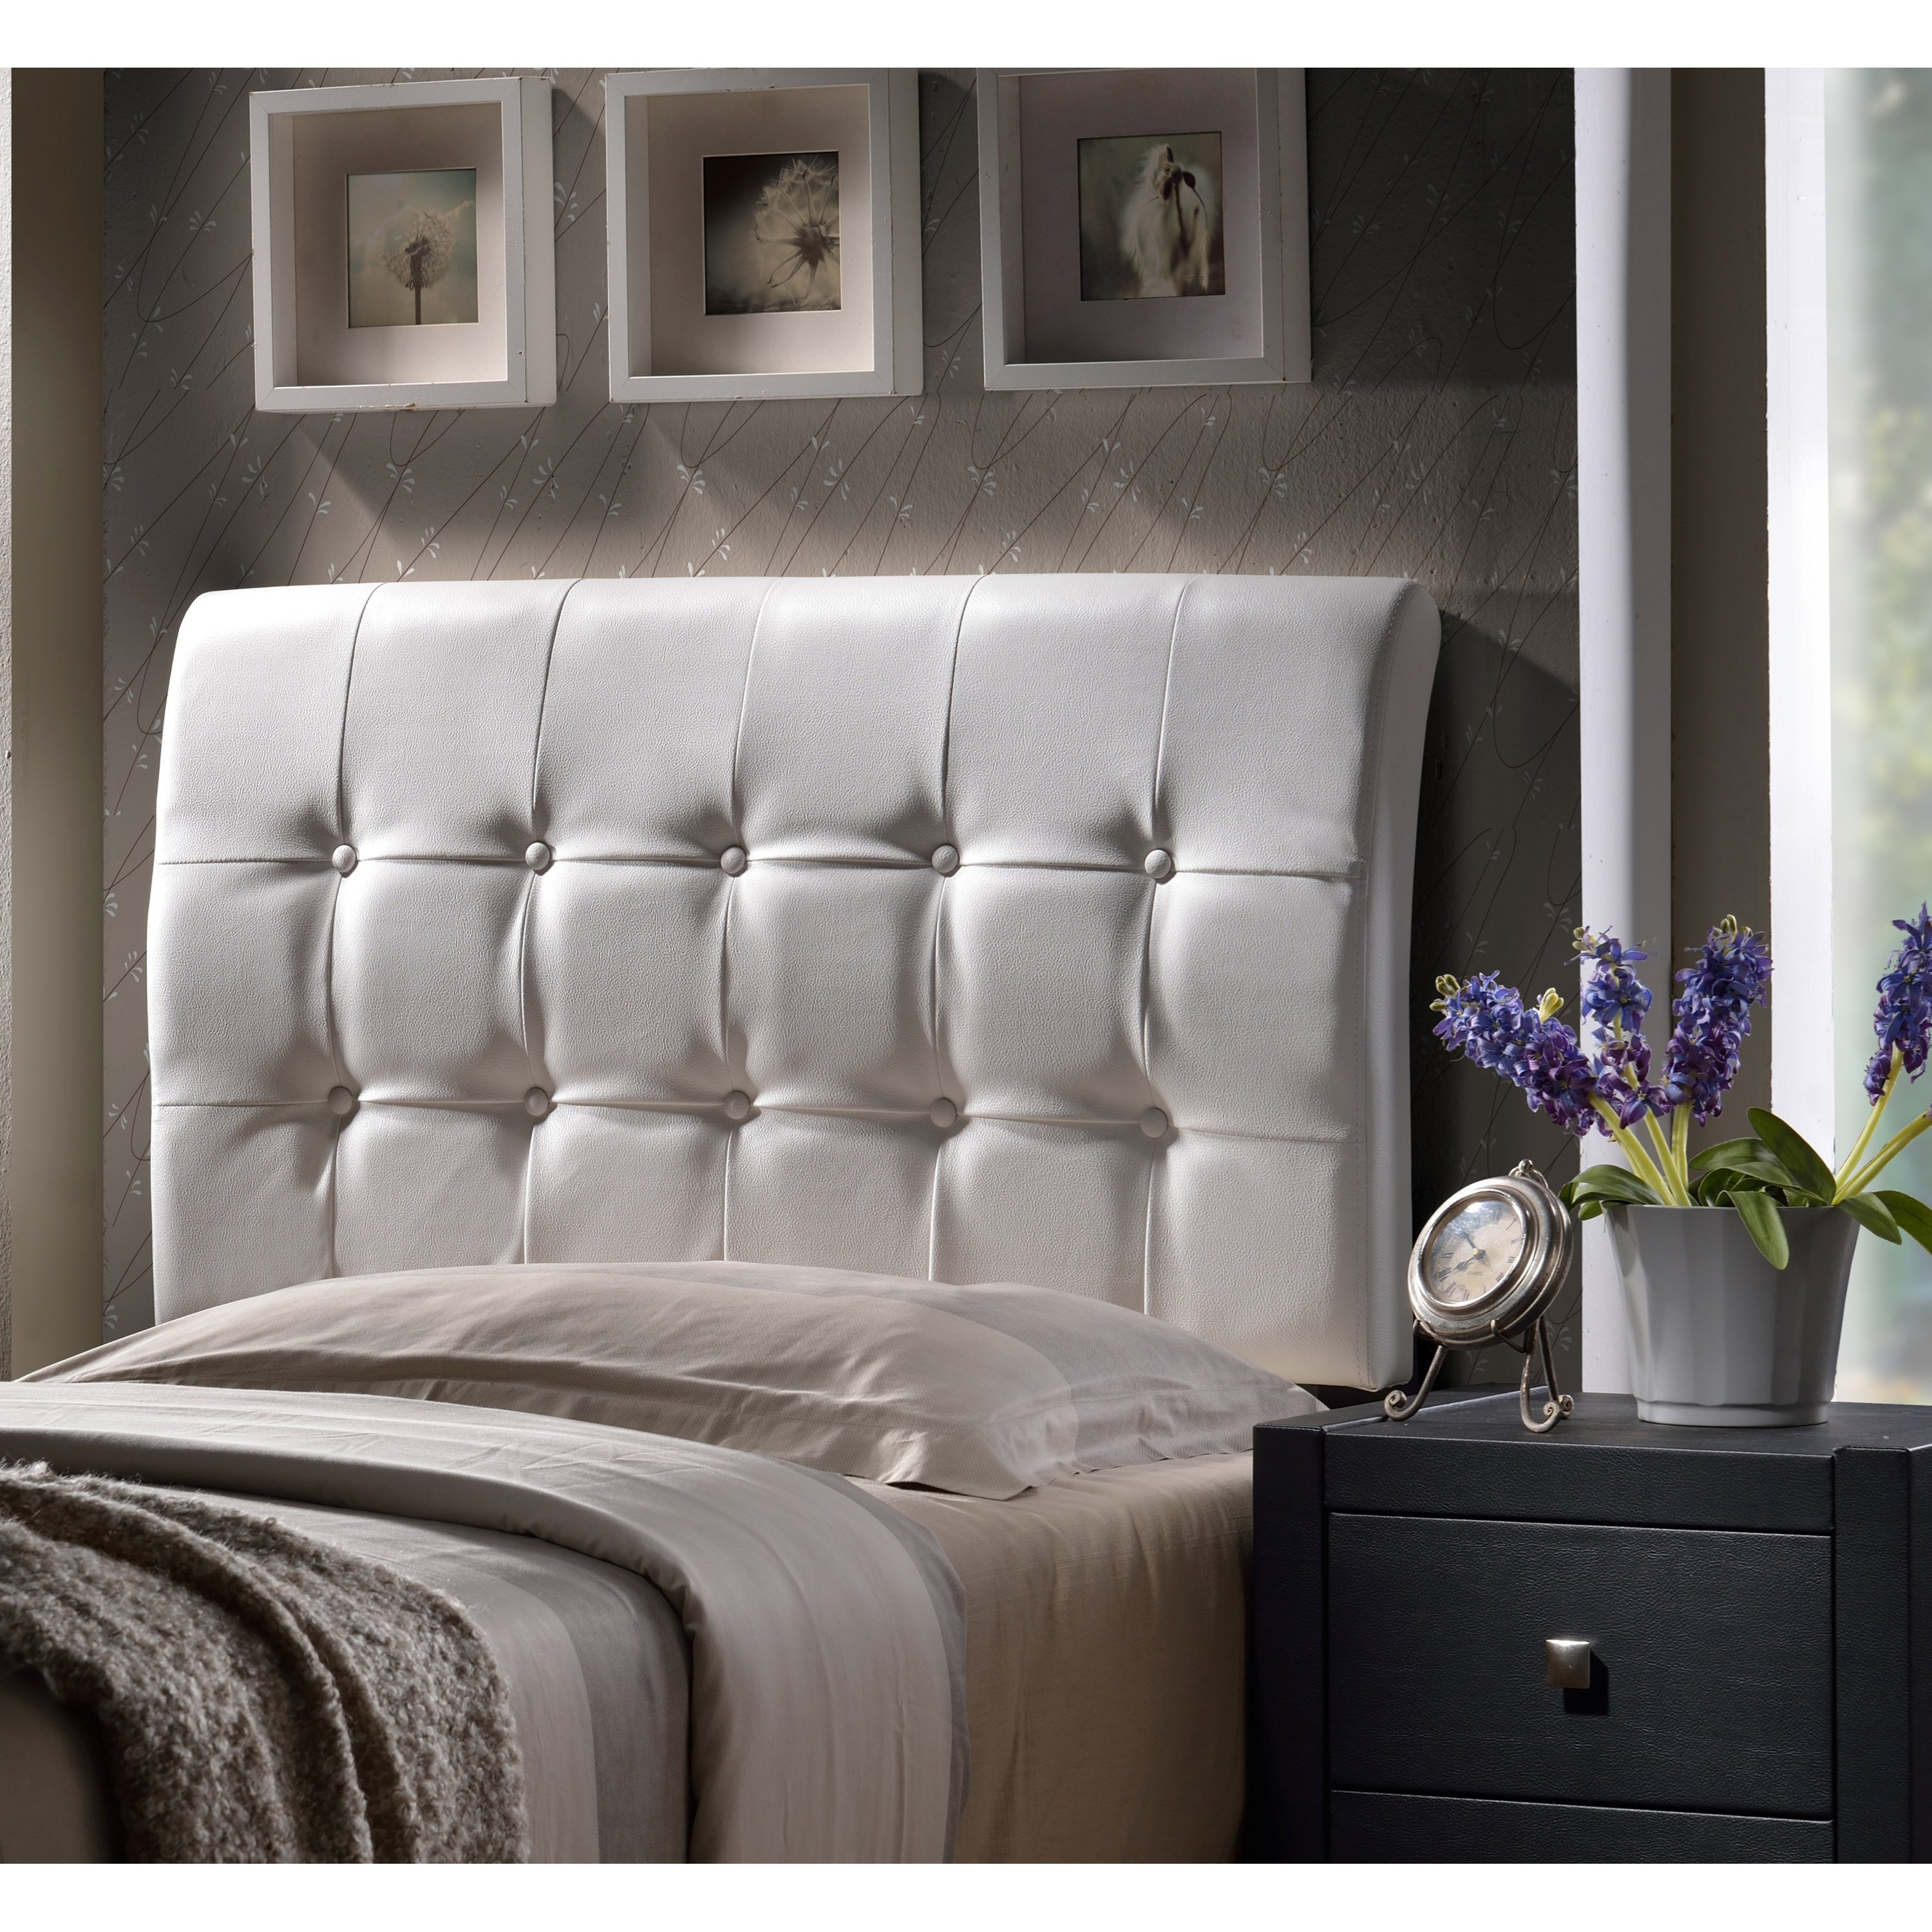 Upholstered Beds Lusso Queen Headboard with Rails by Hillsdale at Steger's Furniture